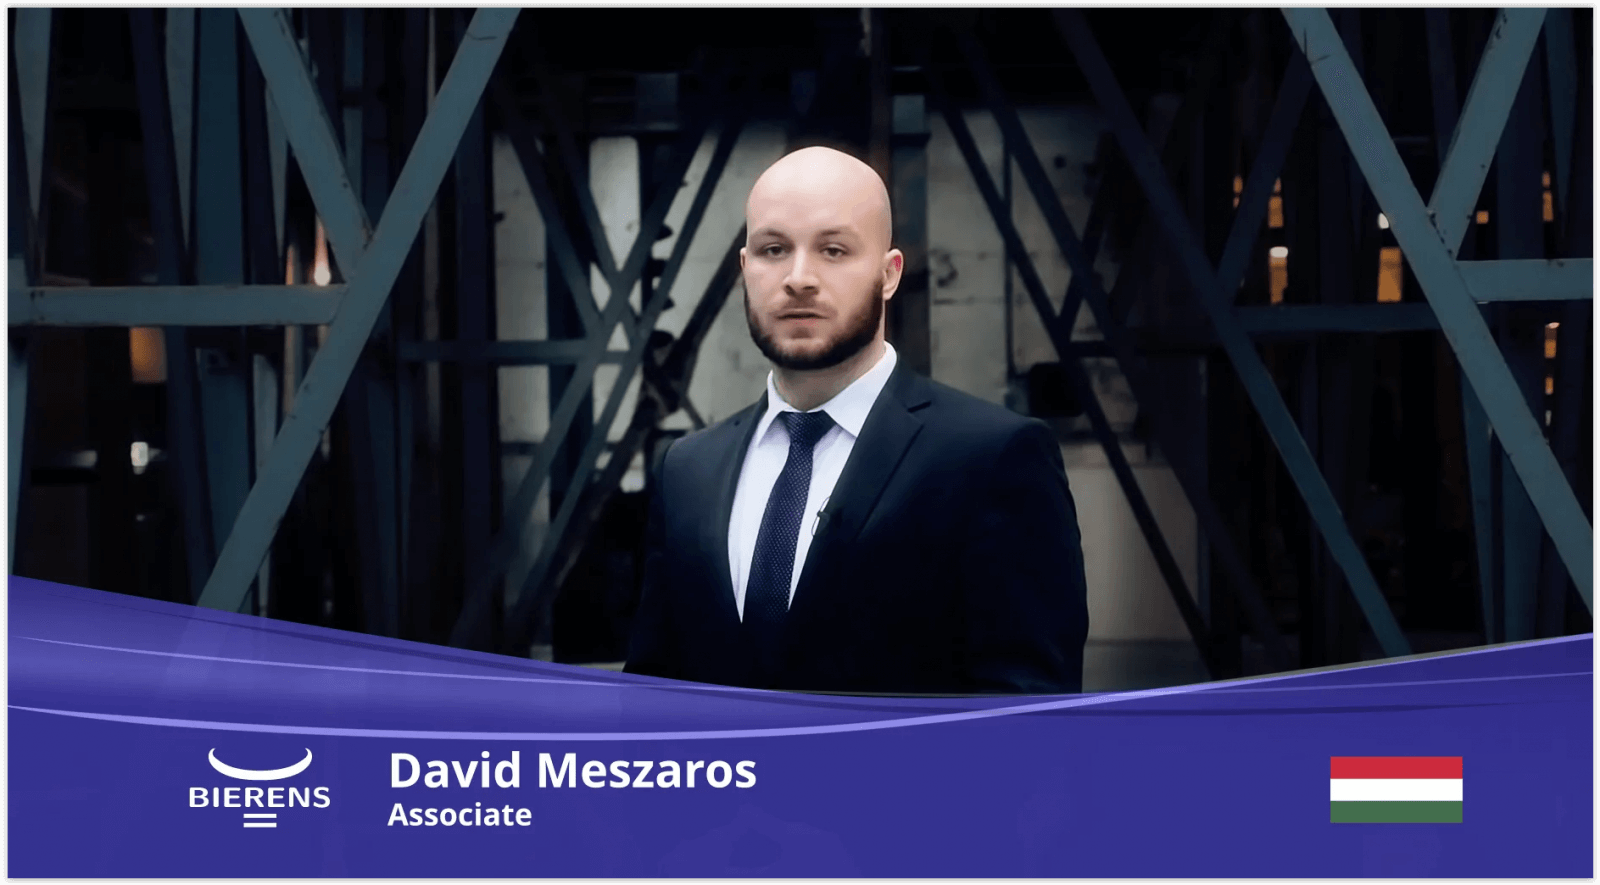 david-meszaros-video